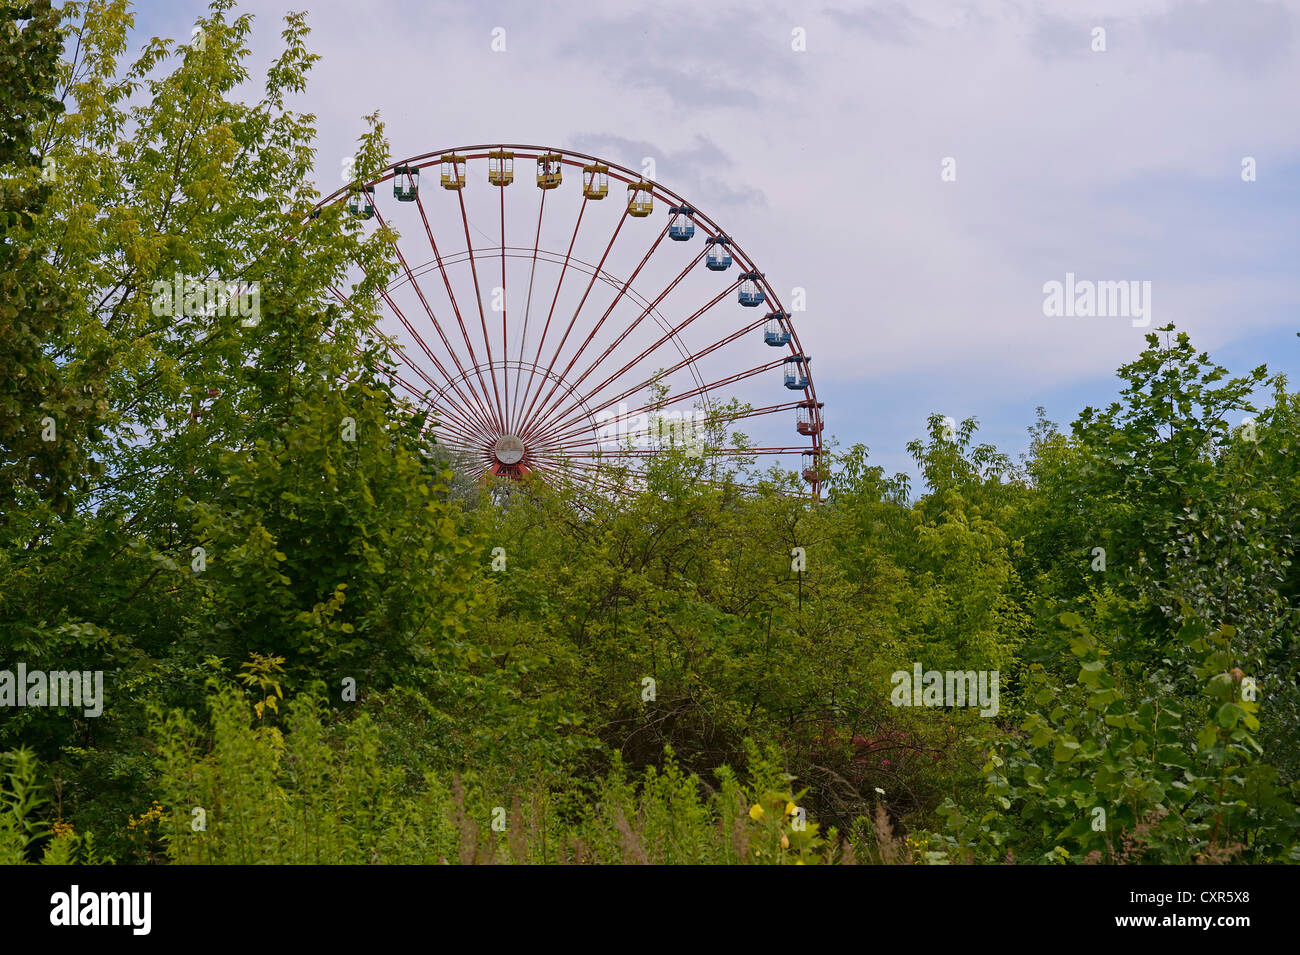 Concealed view of the 45-meter-high Ferris wheel in the former Spreepark Berlin amusement park, formerly known as - Stock Image